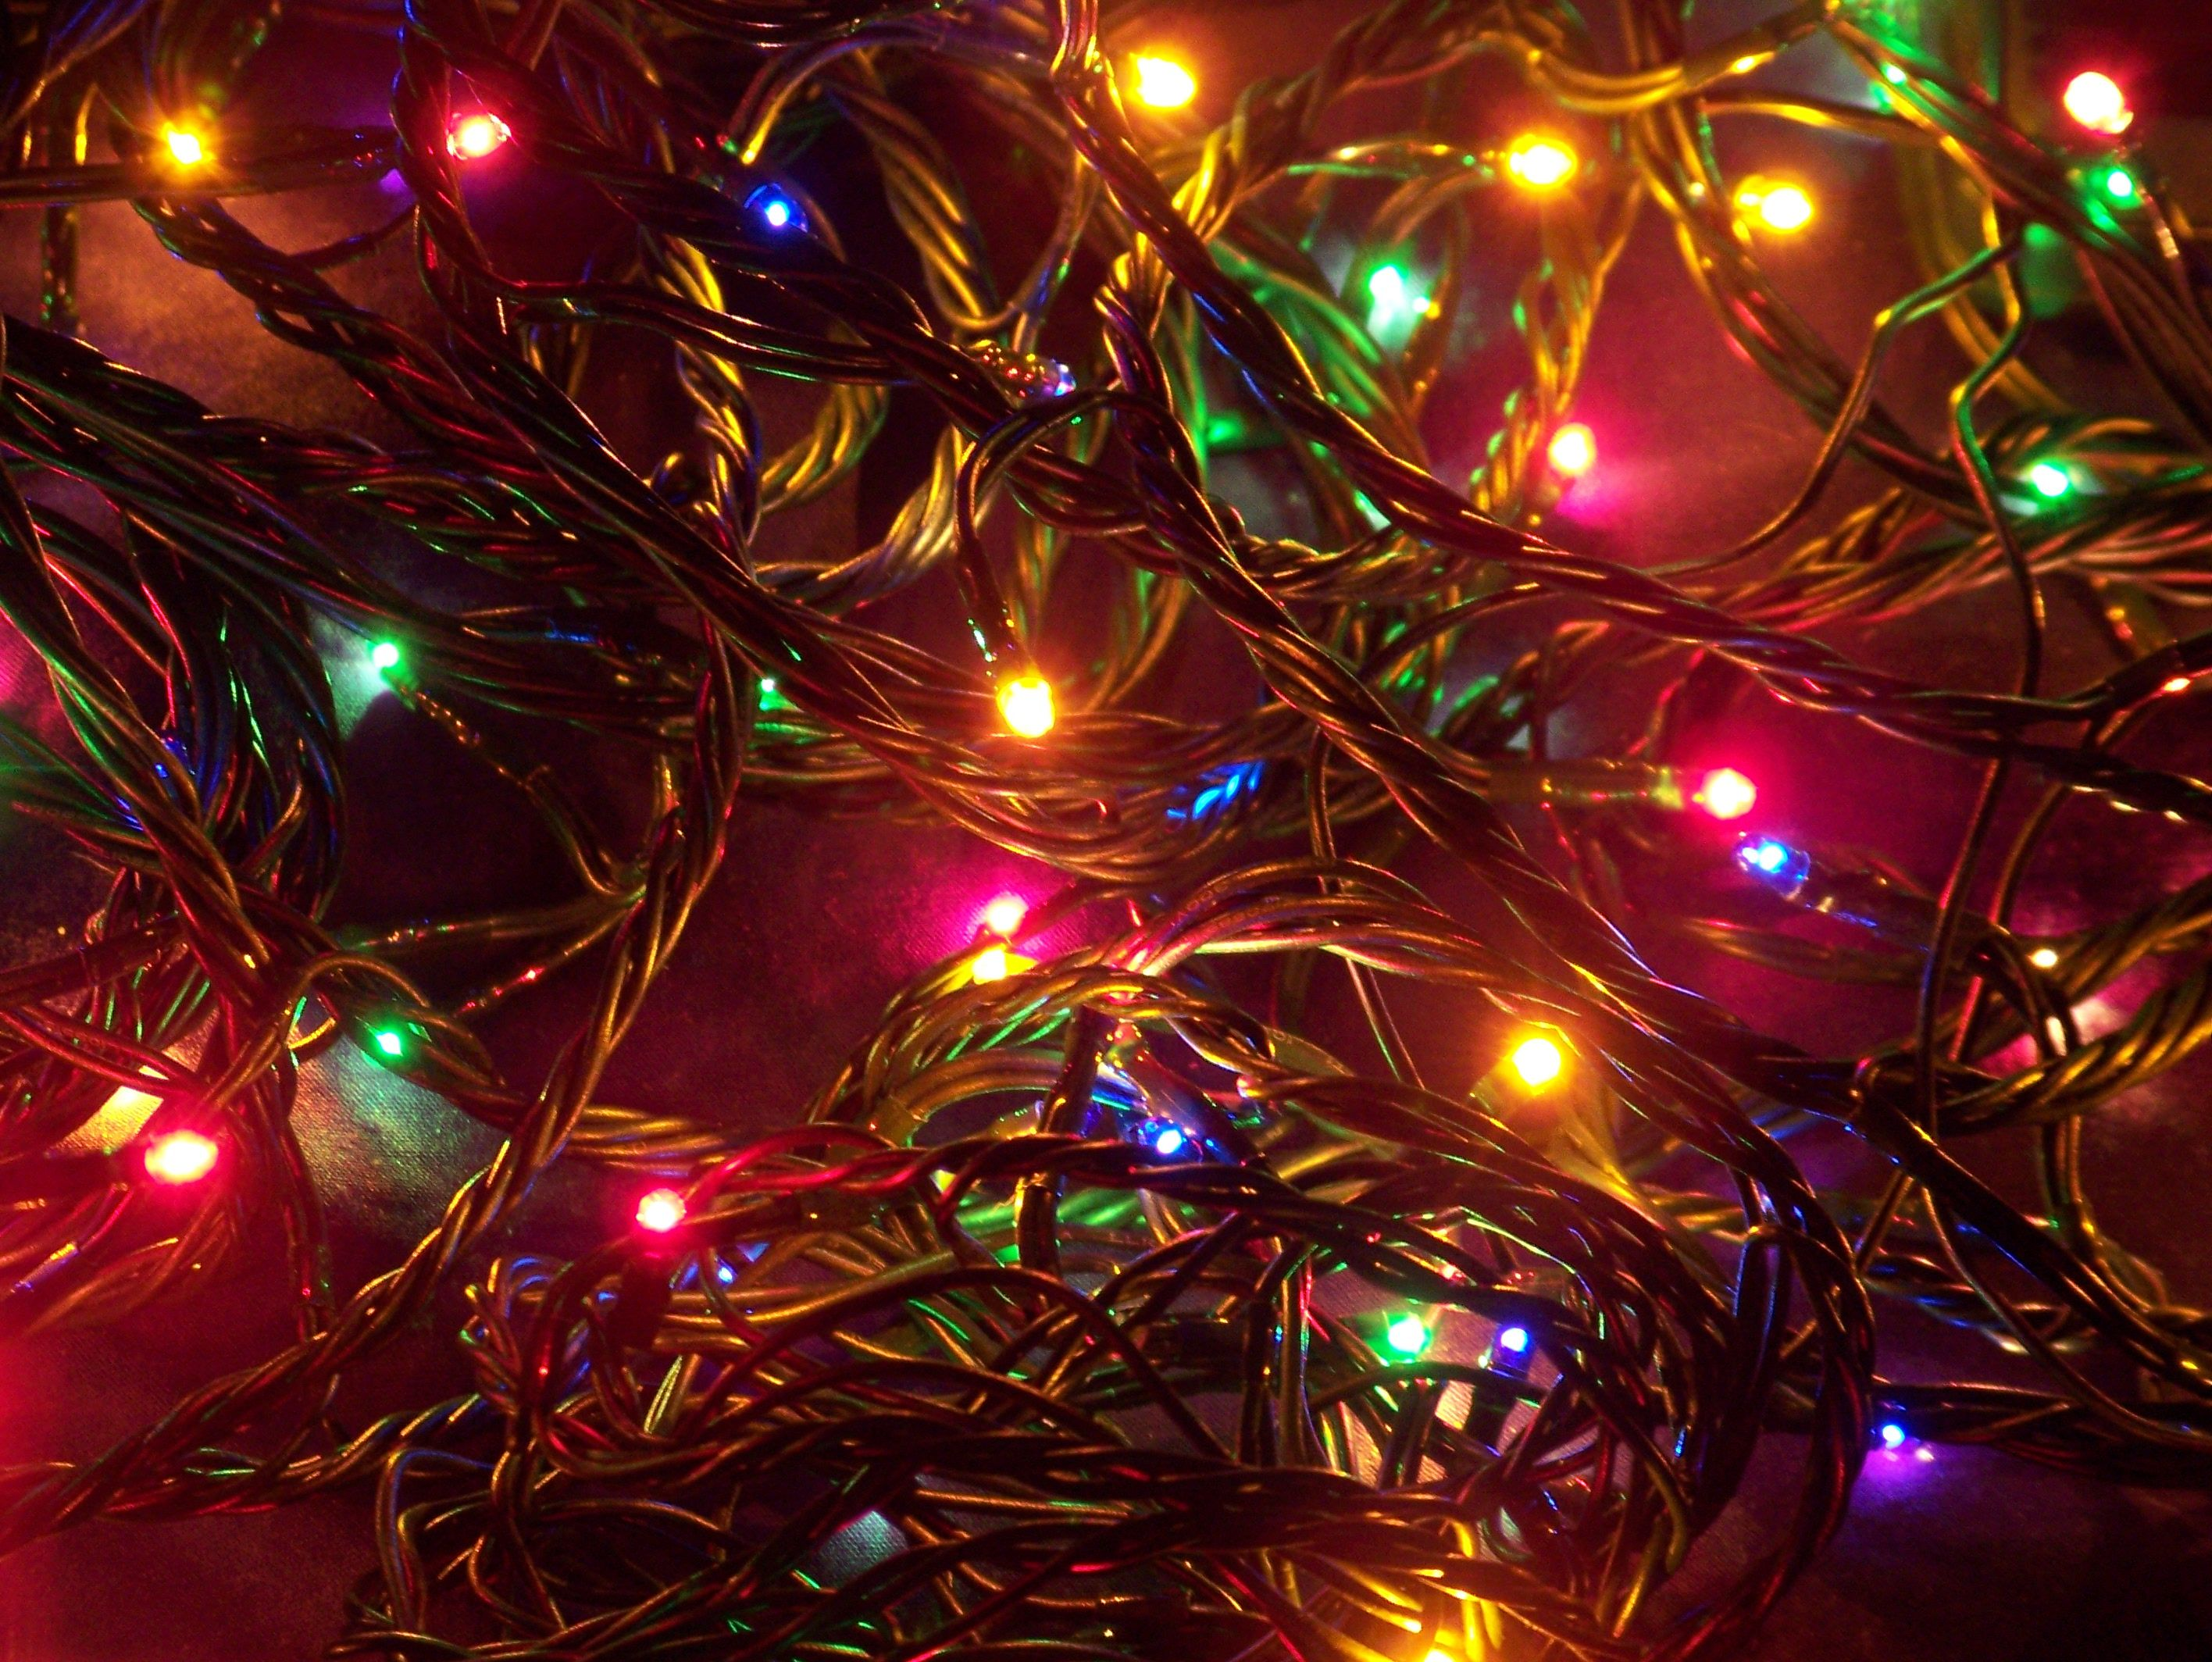 2832x2128 Christmas Lights | Desktop Backgrounds